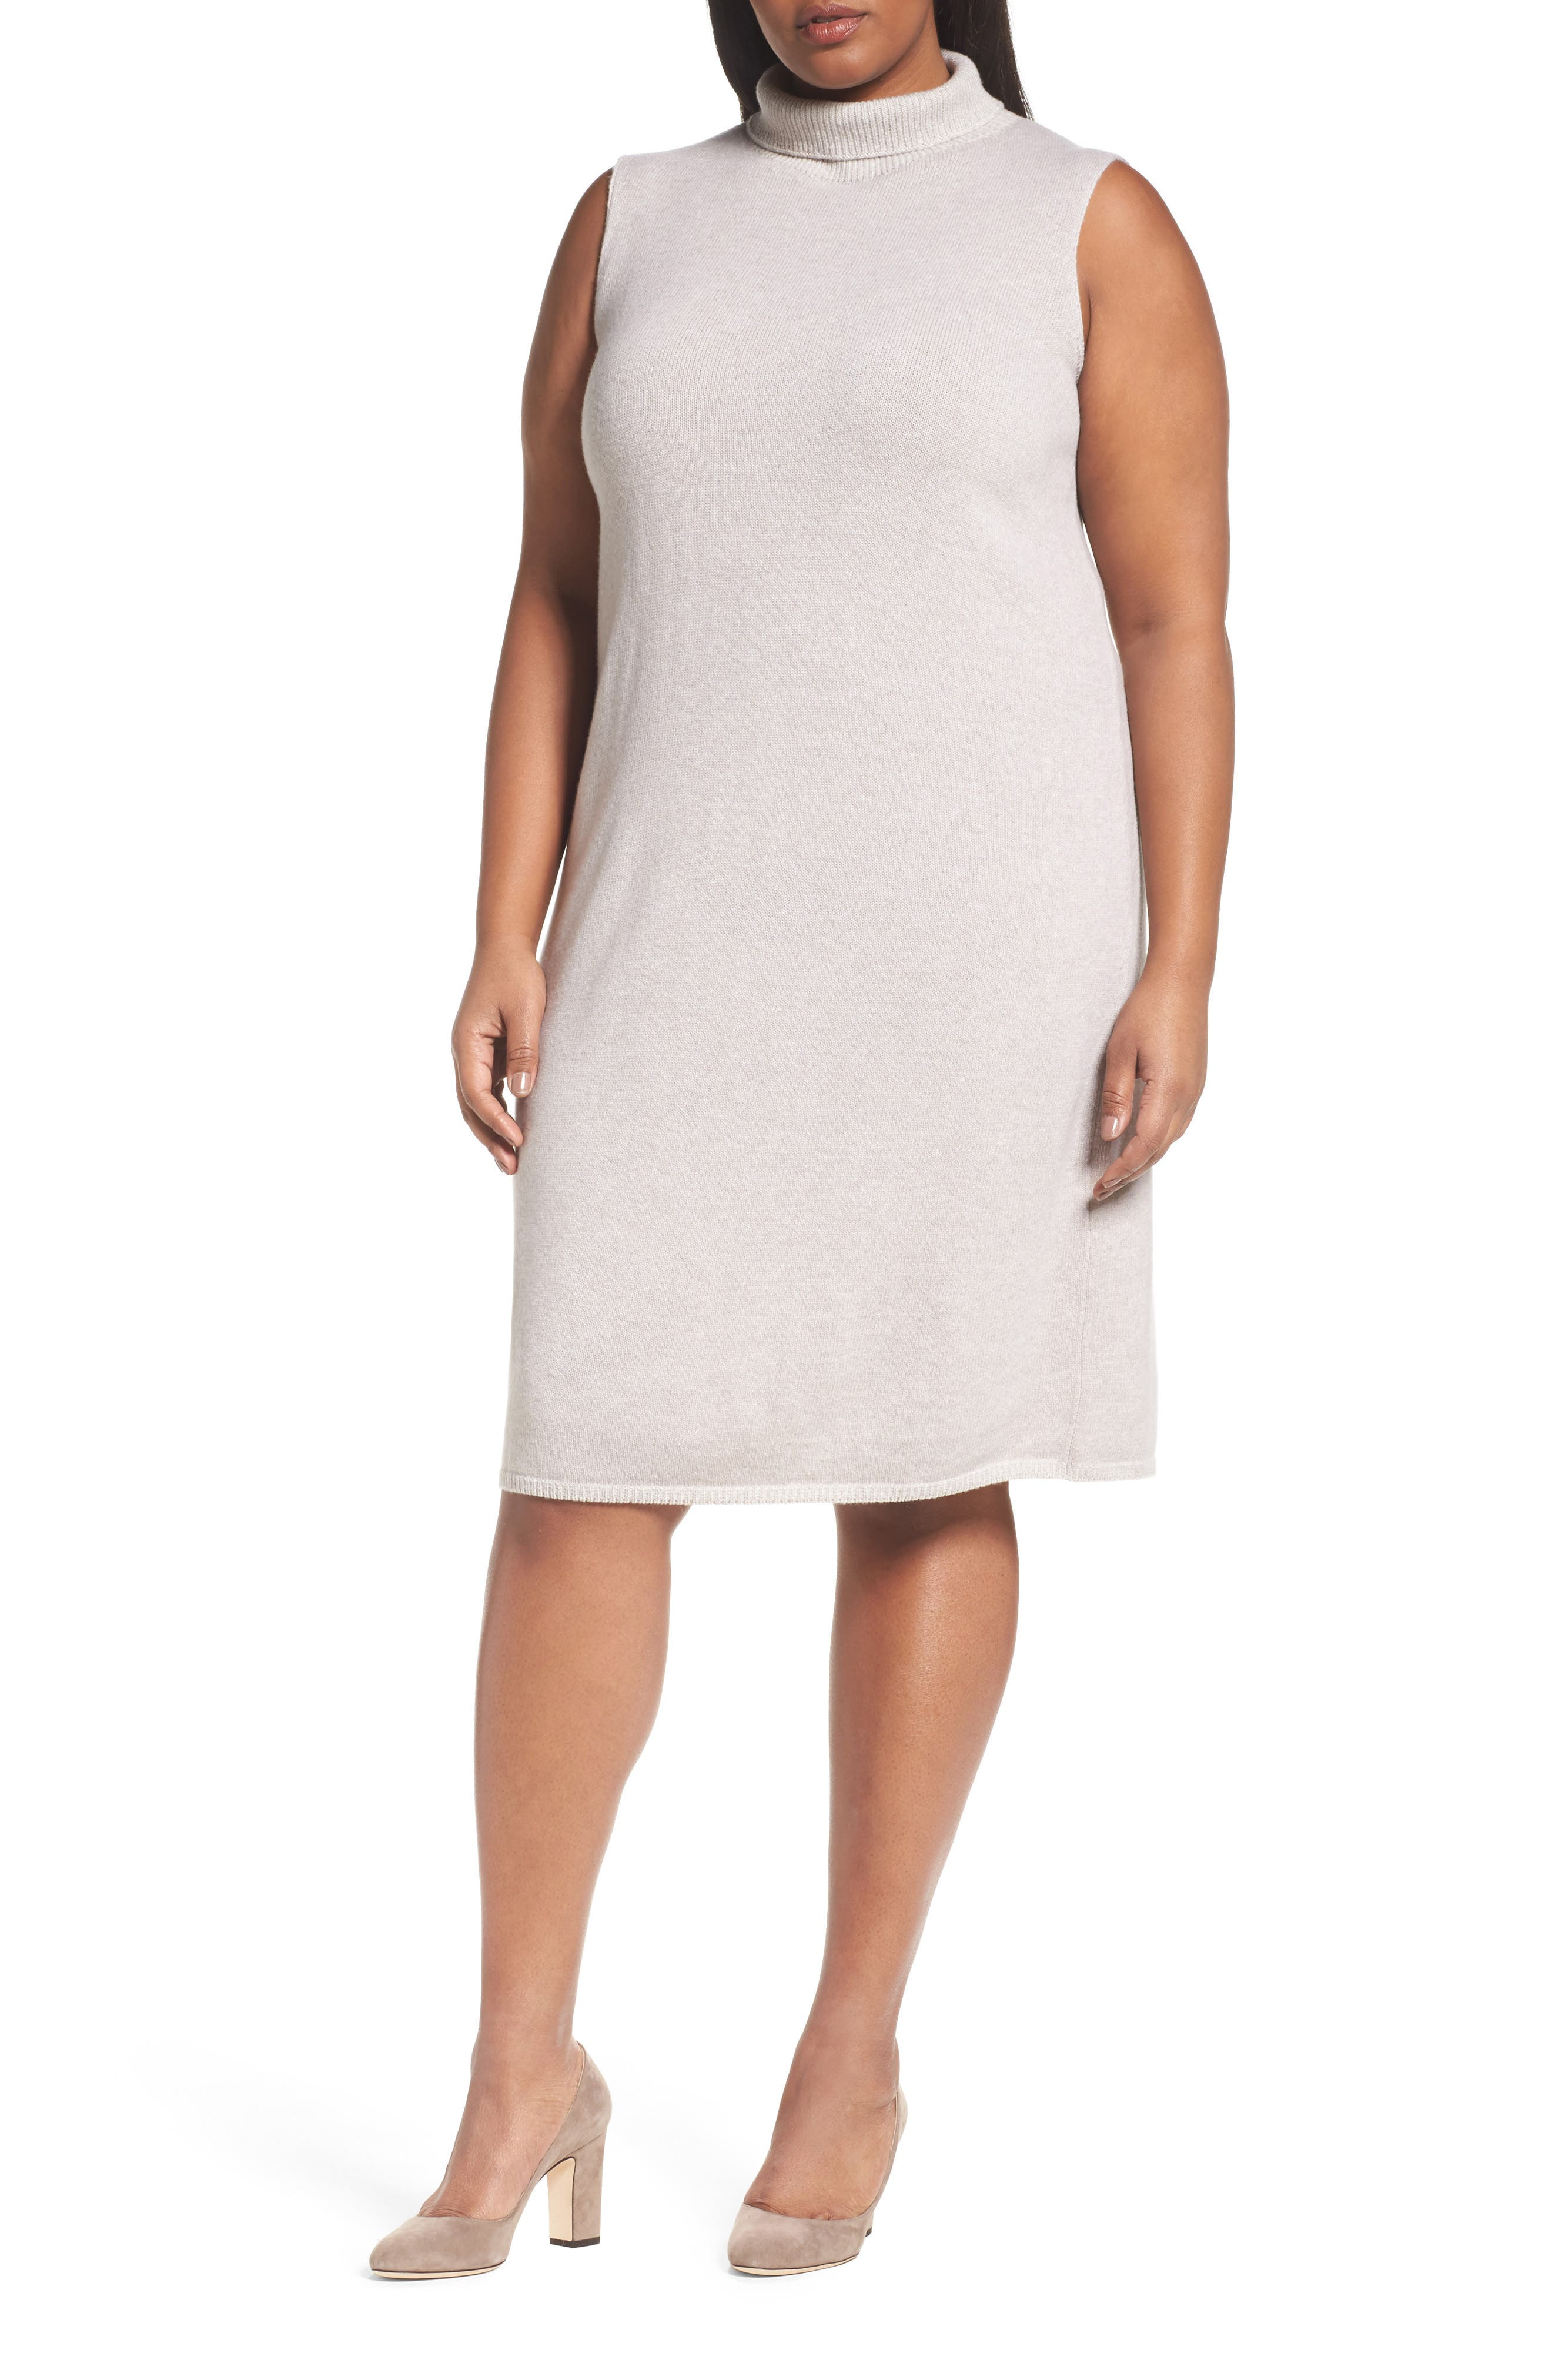 Vanise Merino Wool & Cashmere Sweater Dress,                             Main thumbnail 1, color,                             264